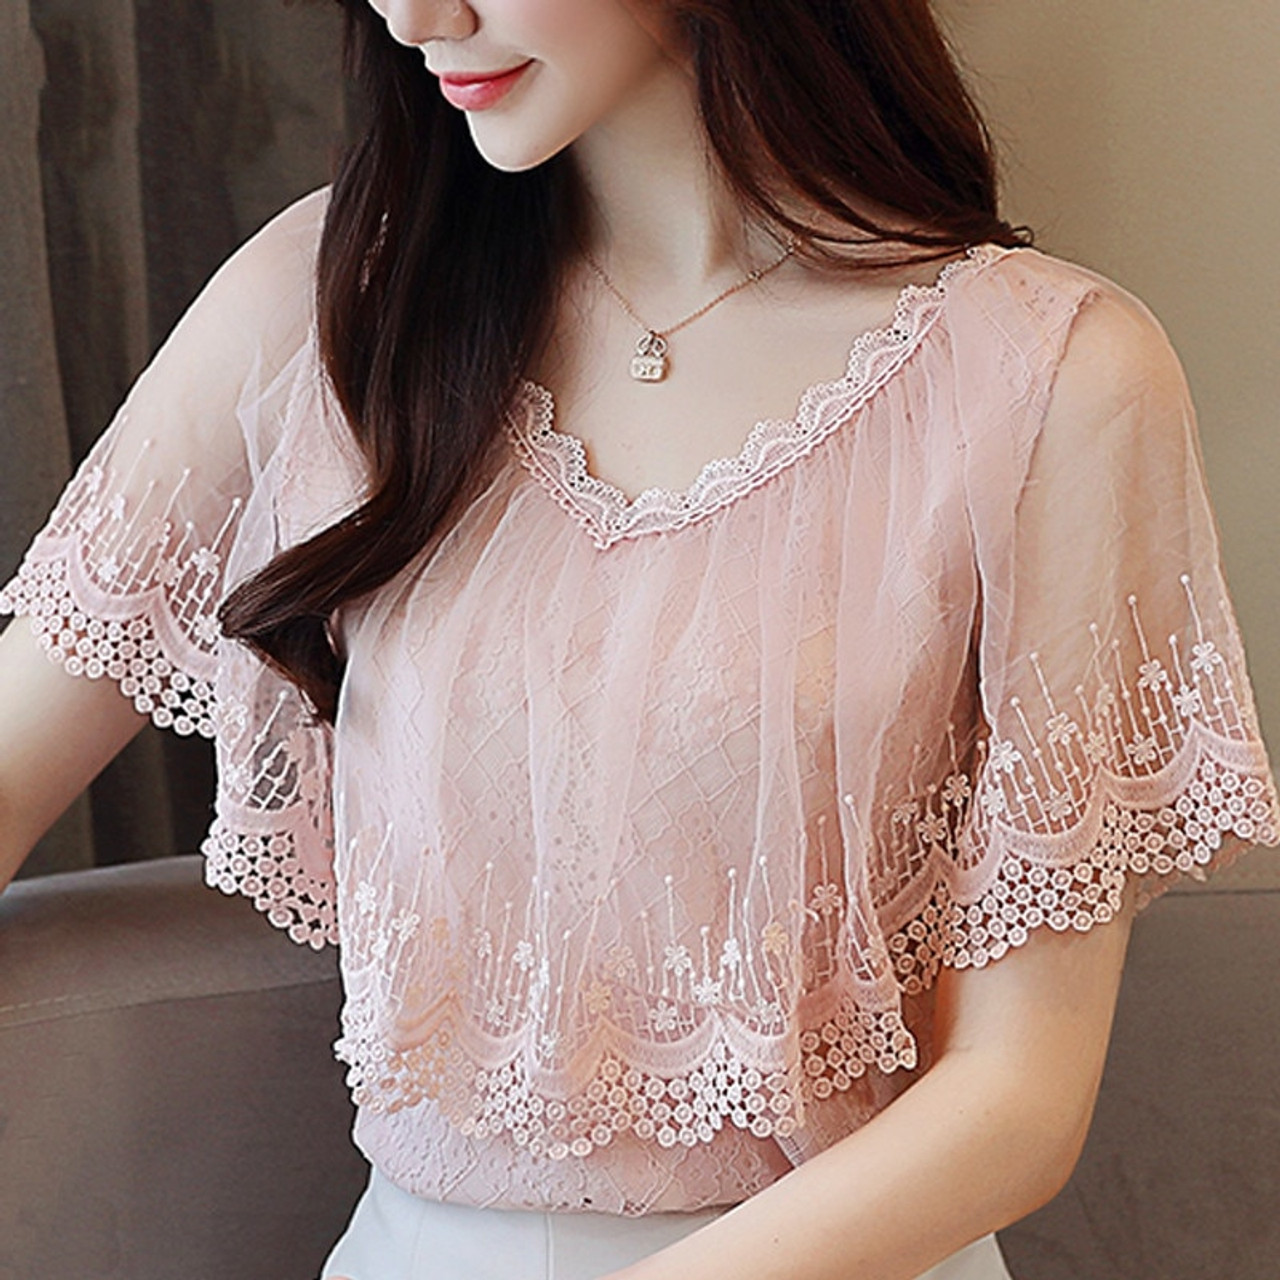 d691f0fe516aad ... Women Tops and Blouses Summer Lace Blouse Shirt Fashion Women Blouses  New 2018 Short Sleeve Lace ...